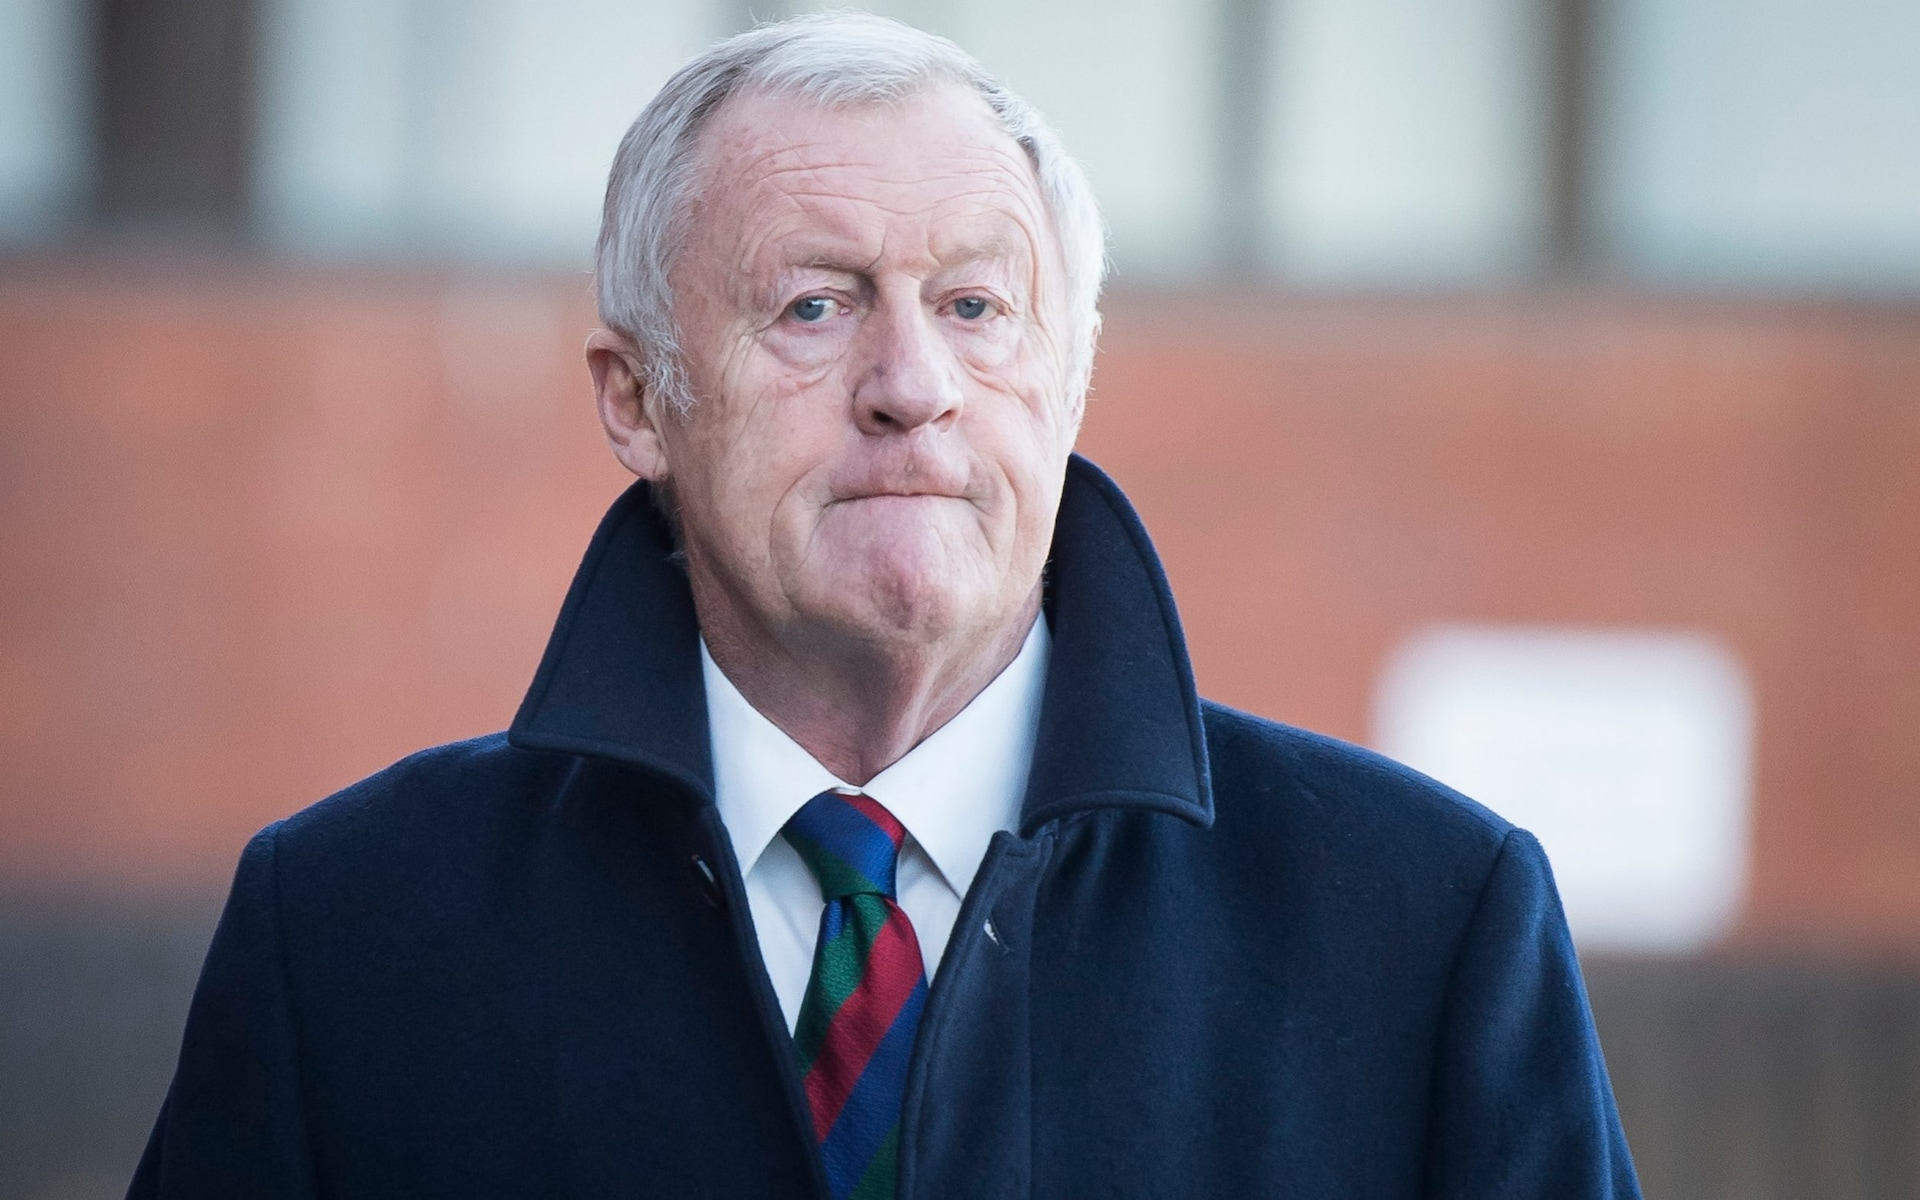 Chris Tarrant admits drink-driving after police called when pub staff saw him stumble at bar